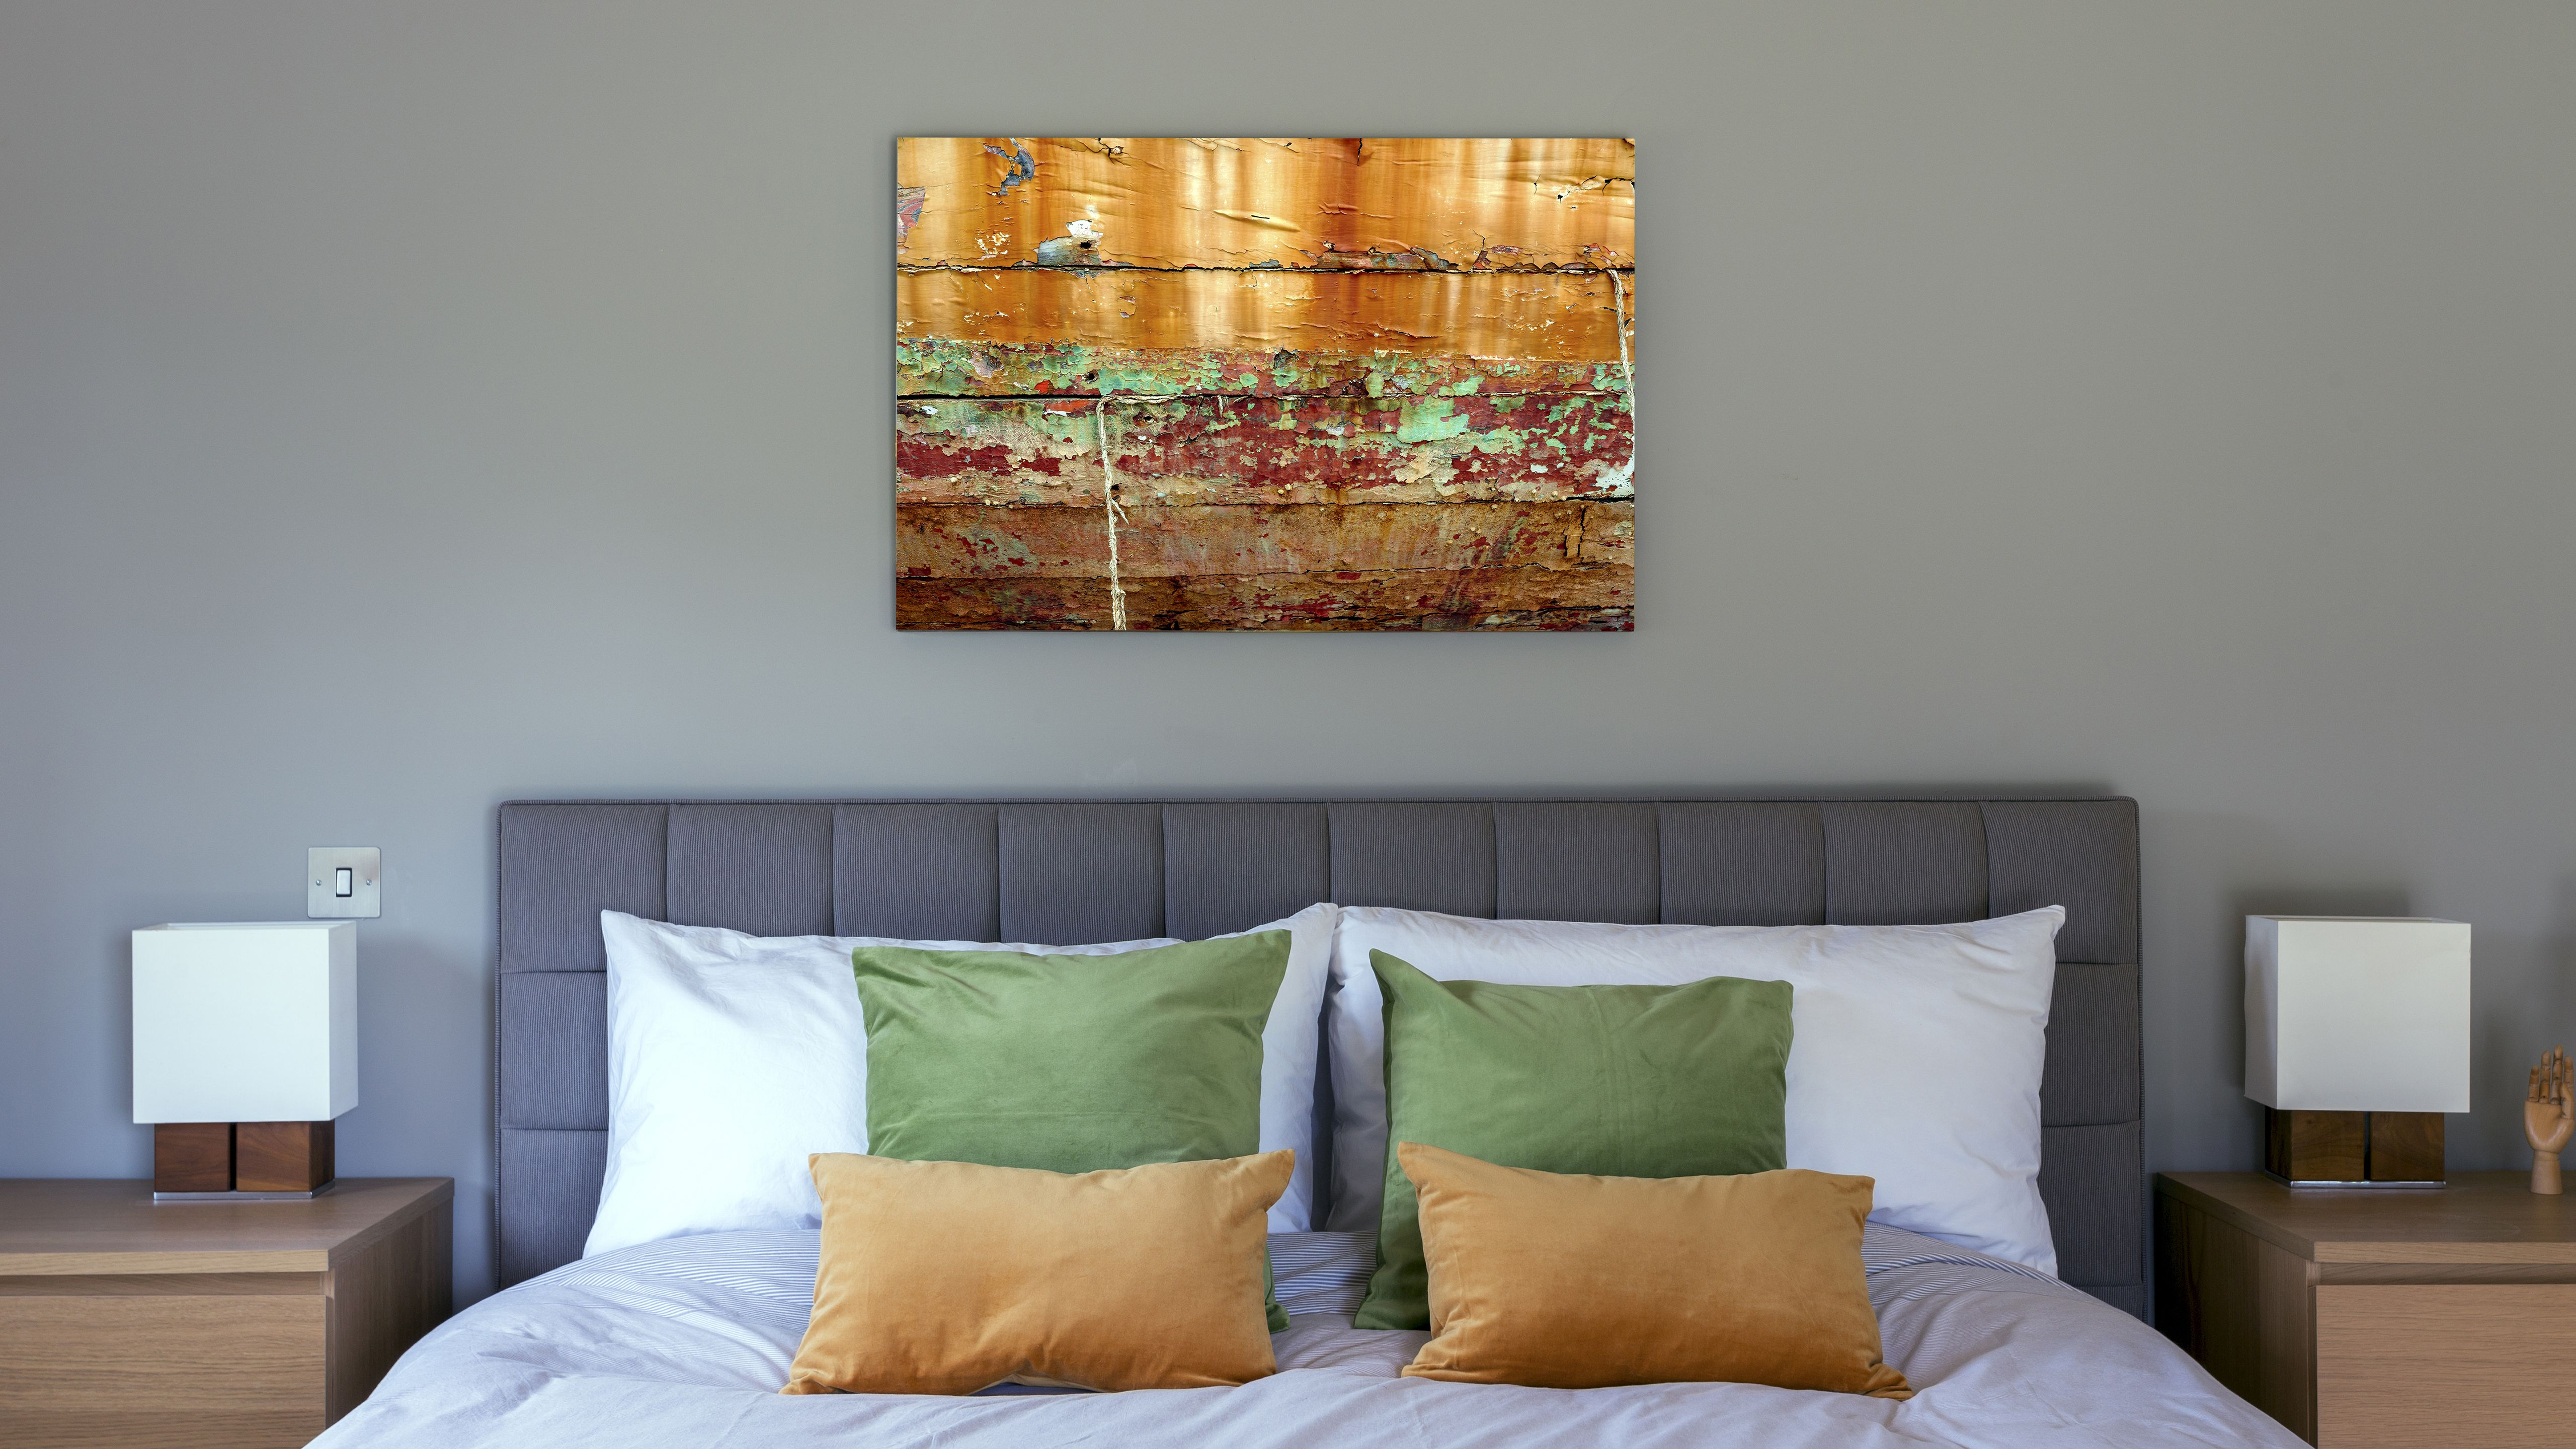 5 Professional Tips For Choosing Artwork For Your Home